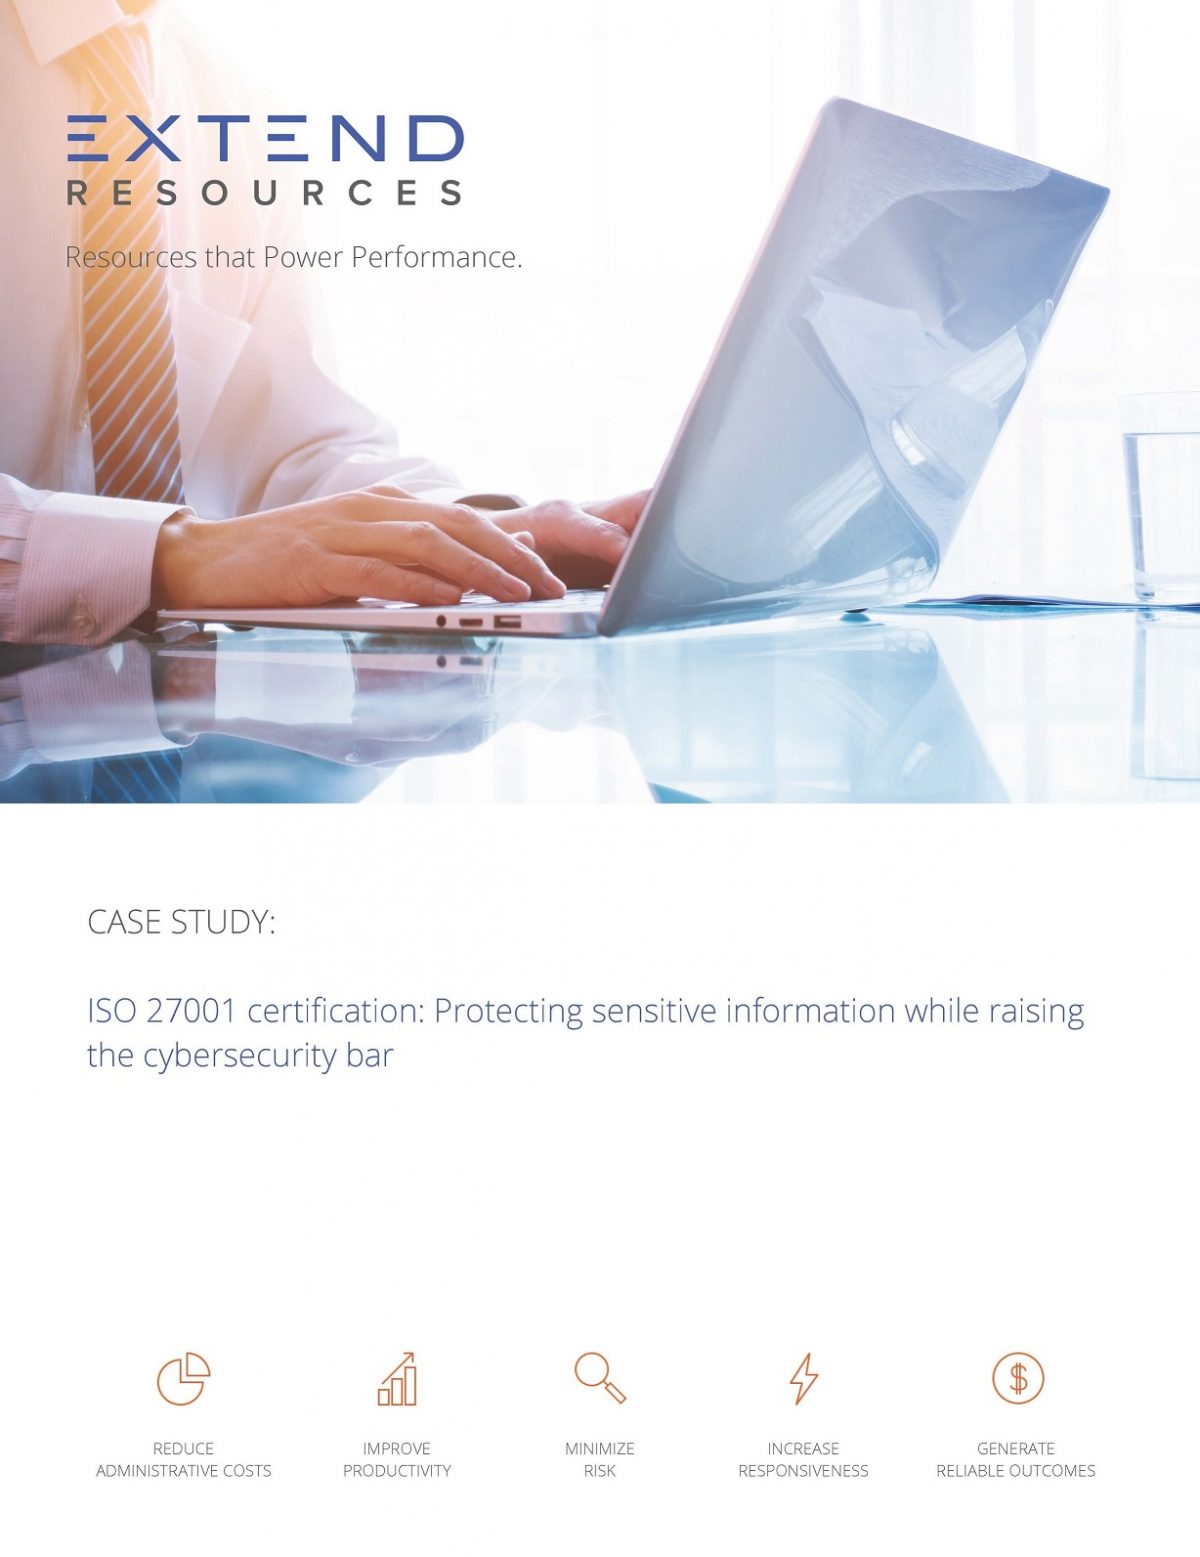 Case Study: ISO 27001 Certification: Protecting sensitive information while raising the cybersecurity bar